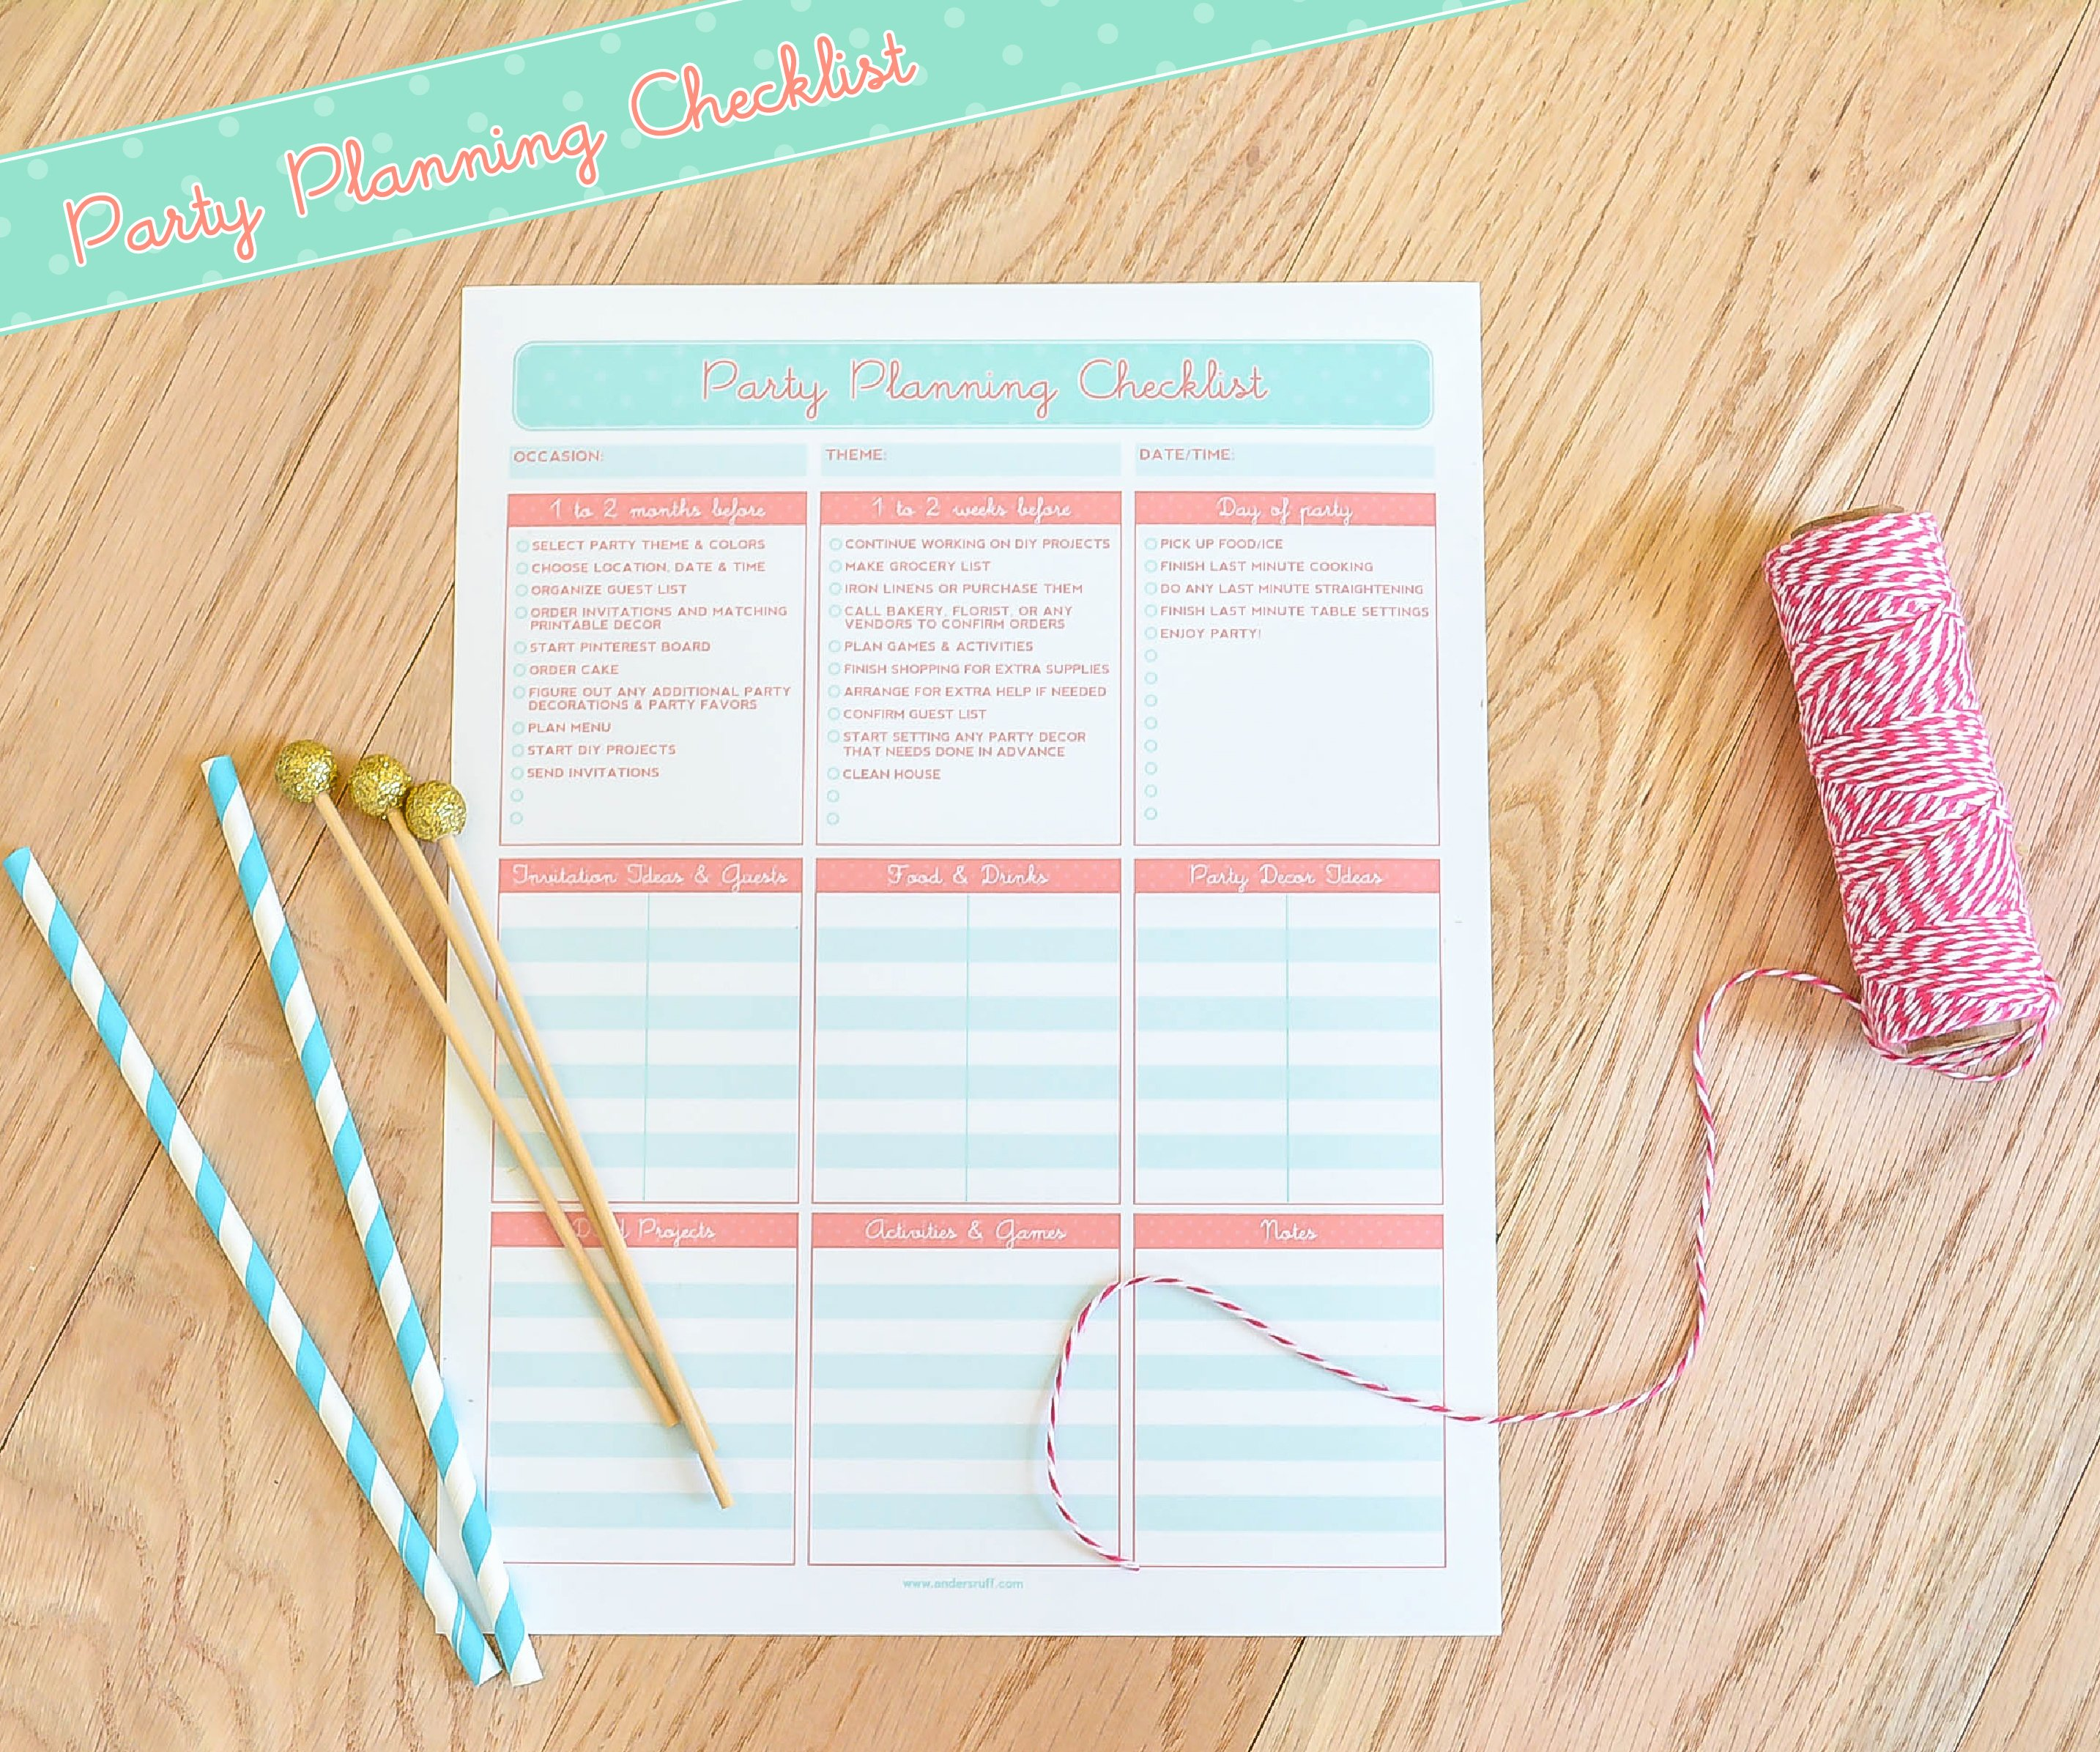 Party Planning Checklist Printable Fresh Ruff Draft Free Printable Party Planning Checklist